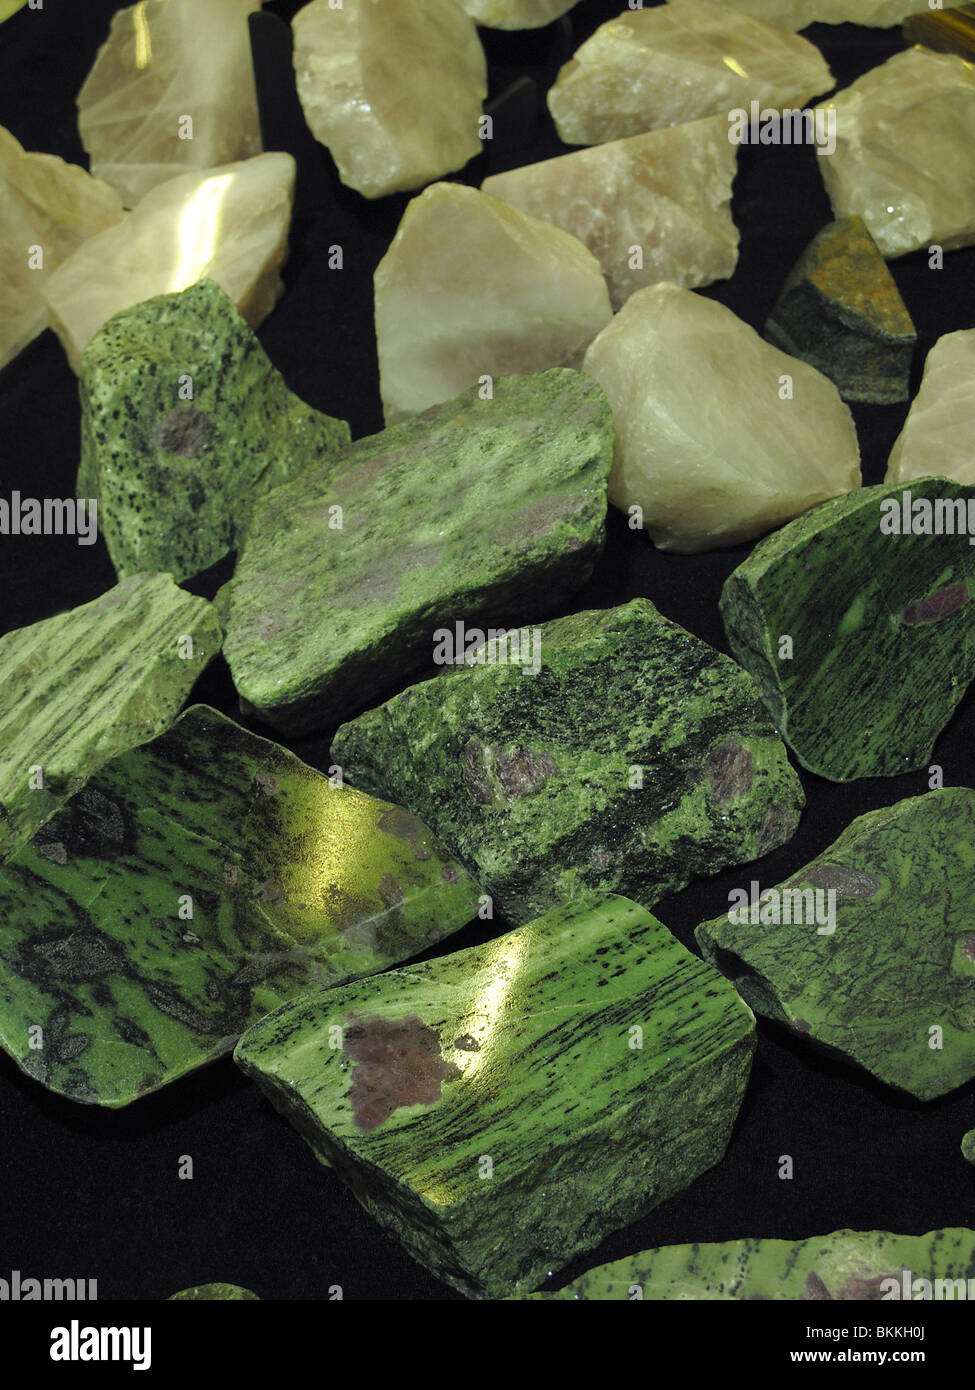 Collection of raw semi-precious stones. Anyolite or Mineral zoisite or Ruby in zoisite or Tanganyika artstone. - Stock Image